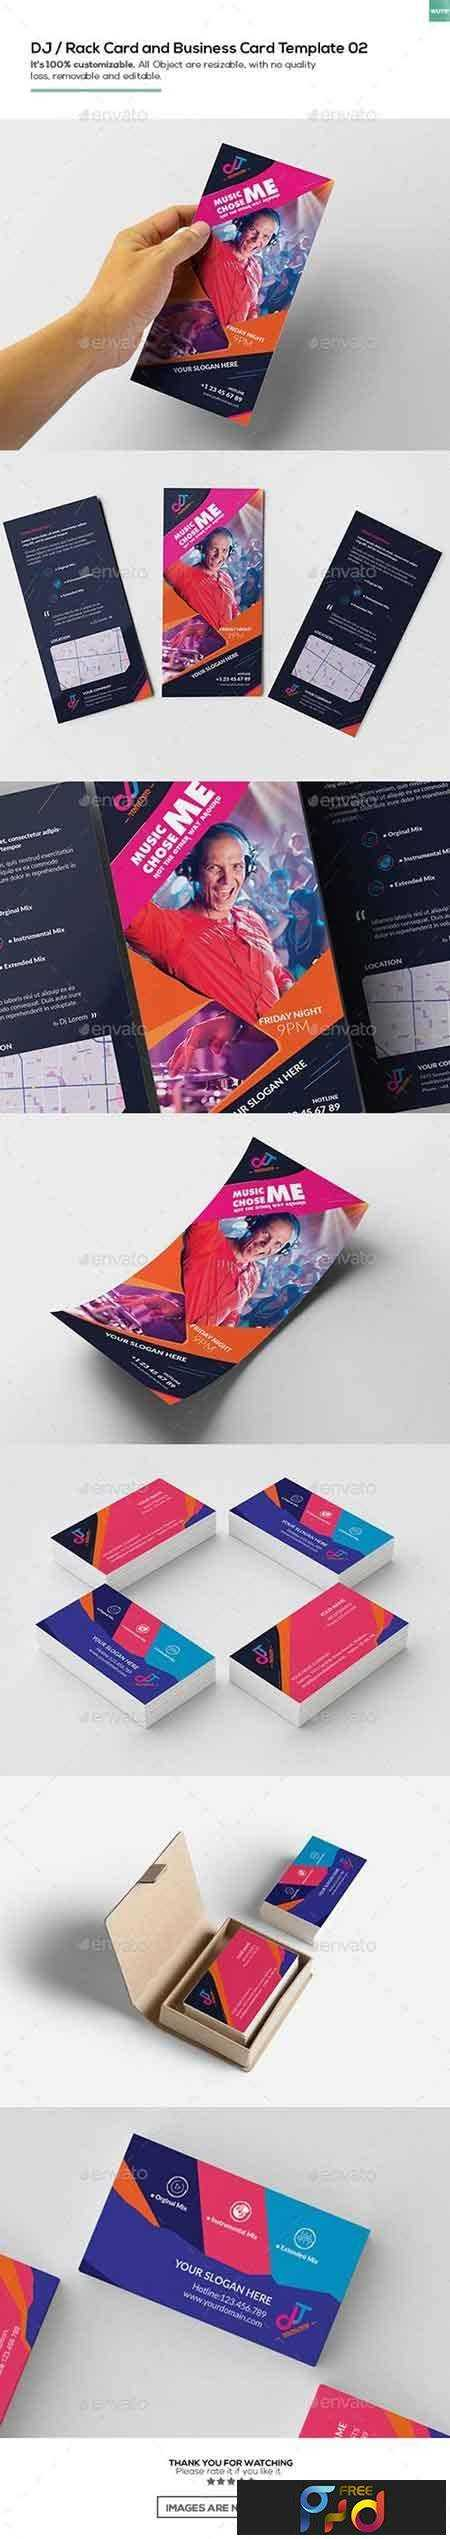 DJ Rack Card And Business Card Template Free - Rack card template photoshop